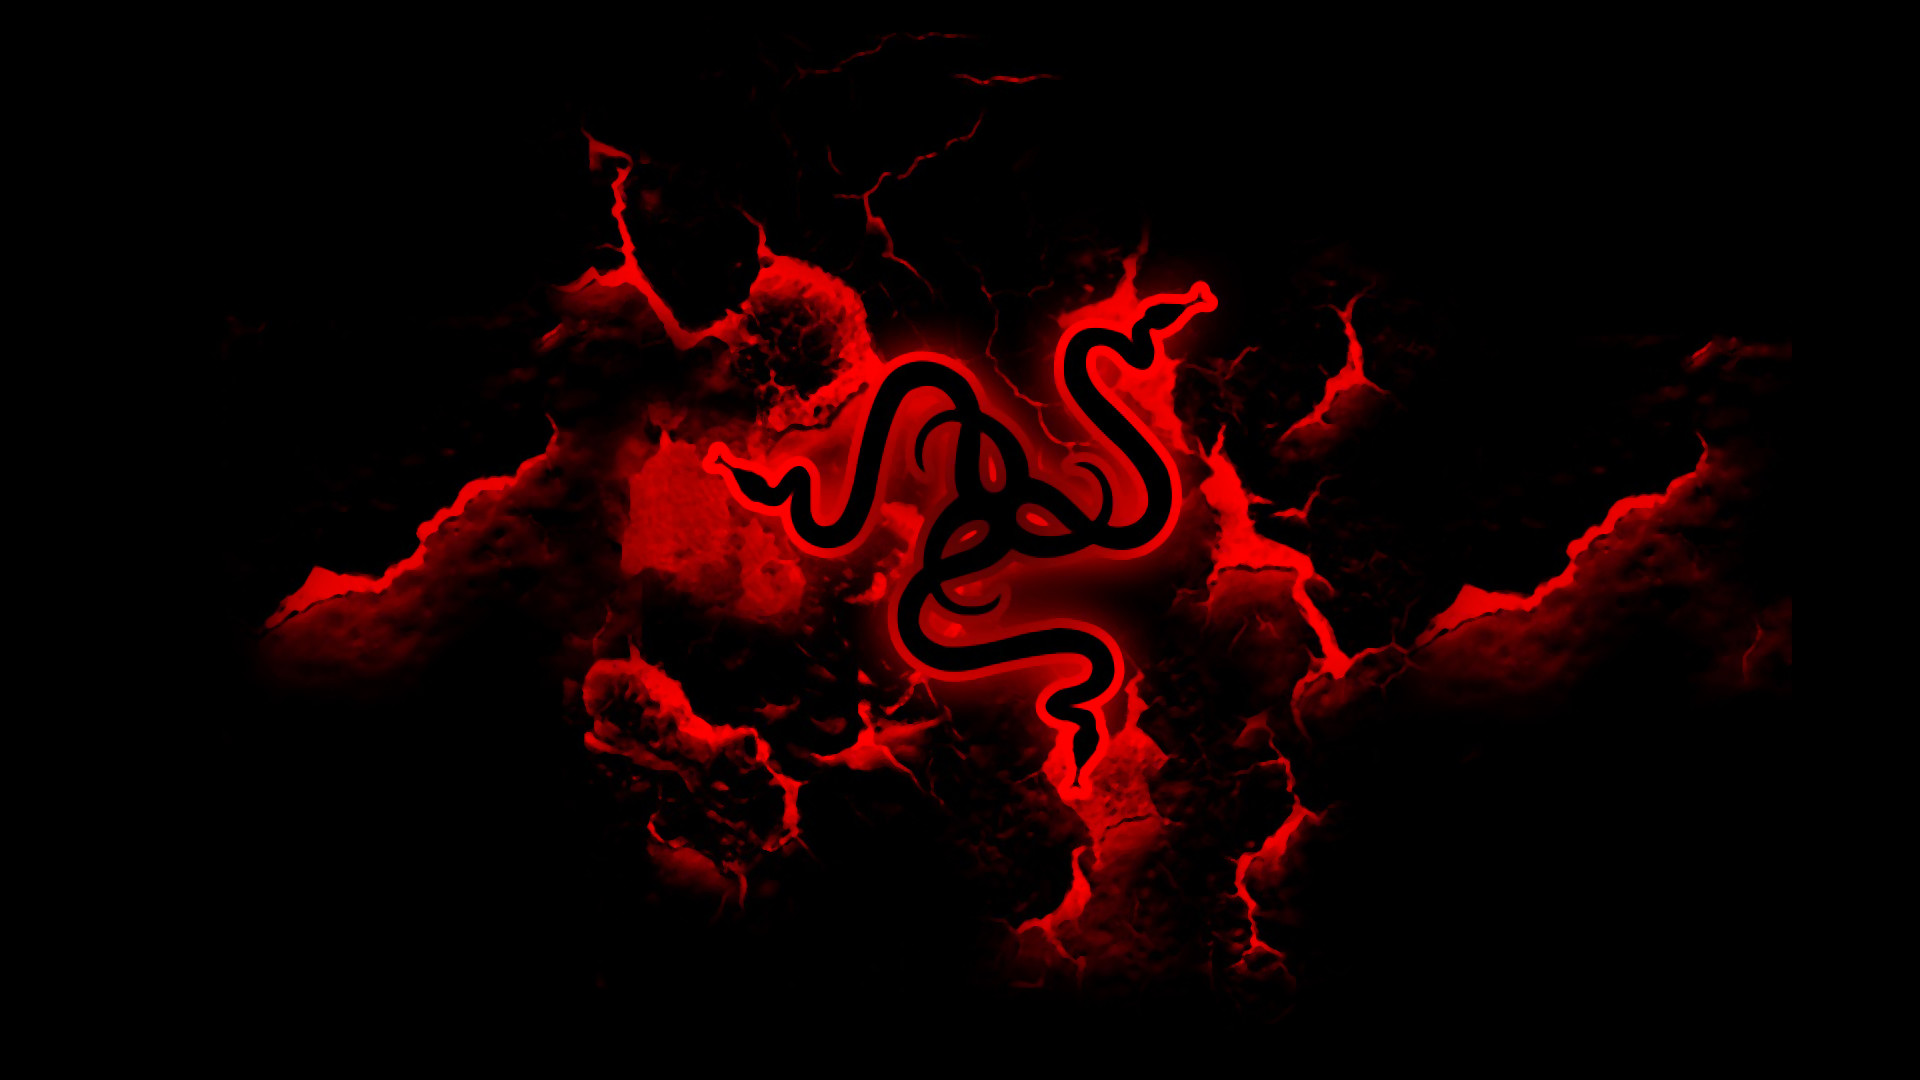 884930 cool black and red wallpapers 1920x1080 ipad